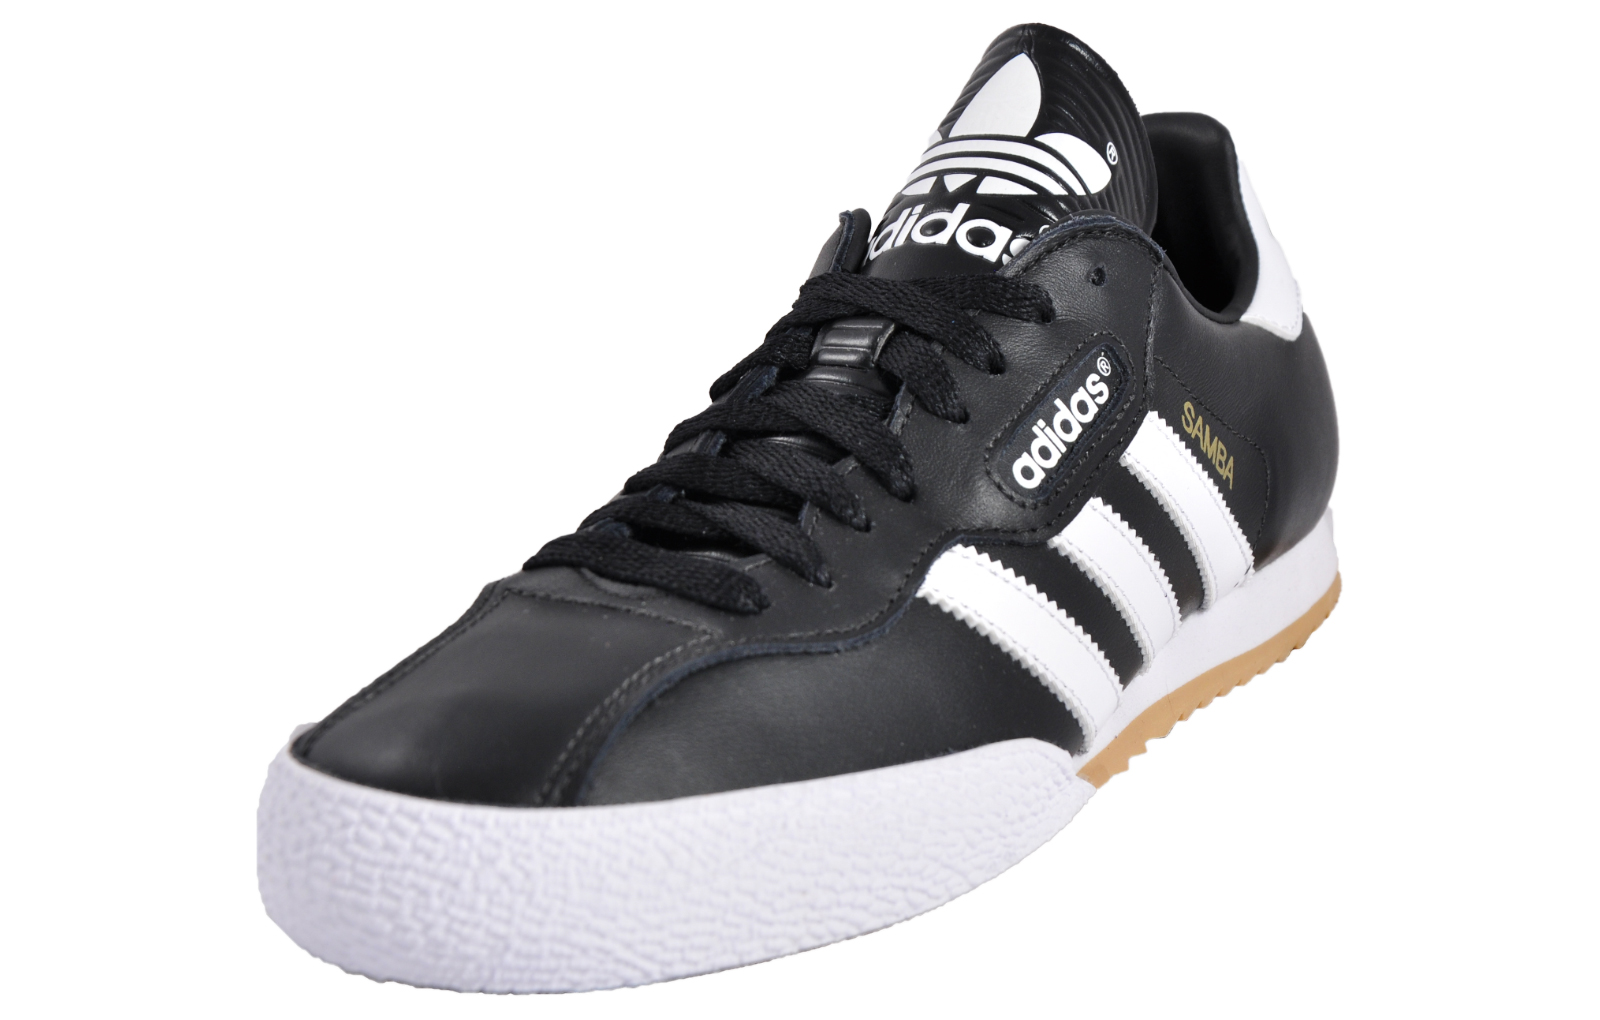 Adidas Originals Samba Super Junior B Grade - AD186841WB